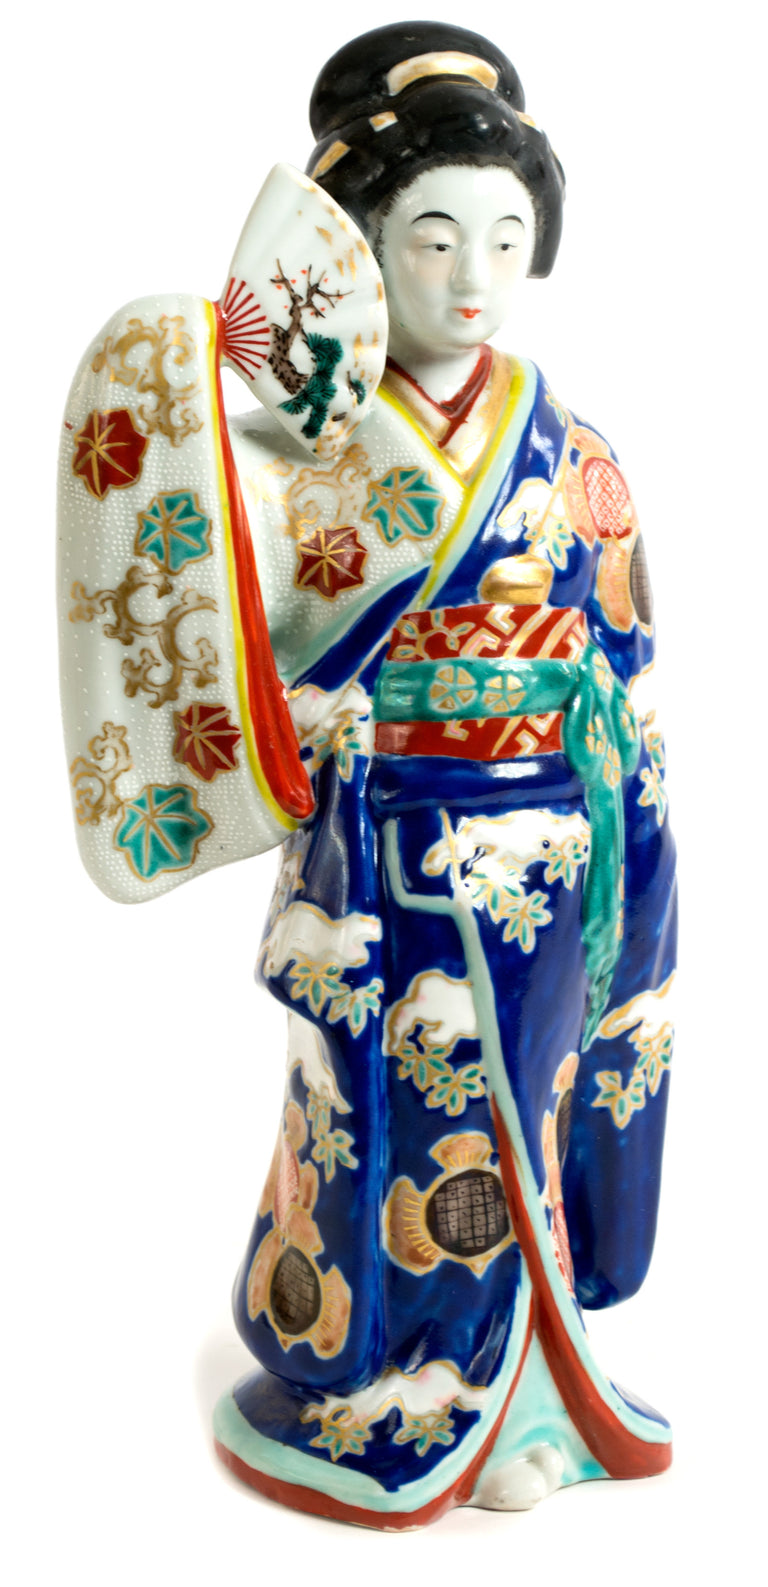 A large Japanese Meiji Porcelain Sculpture of a Geisha